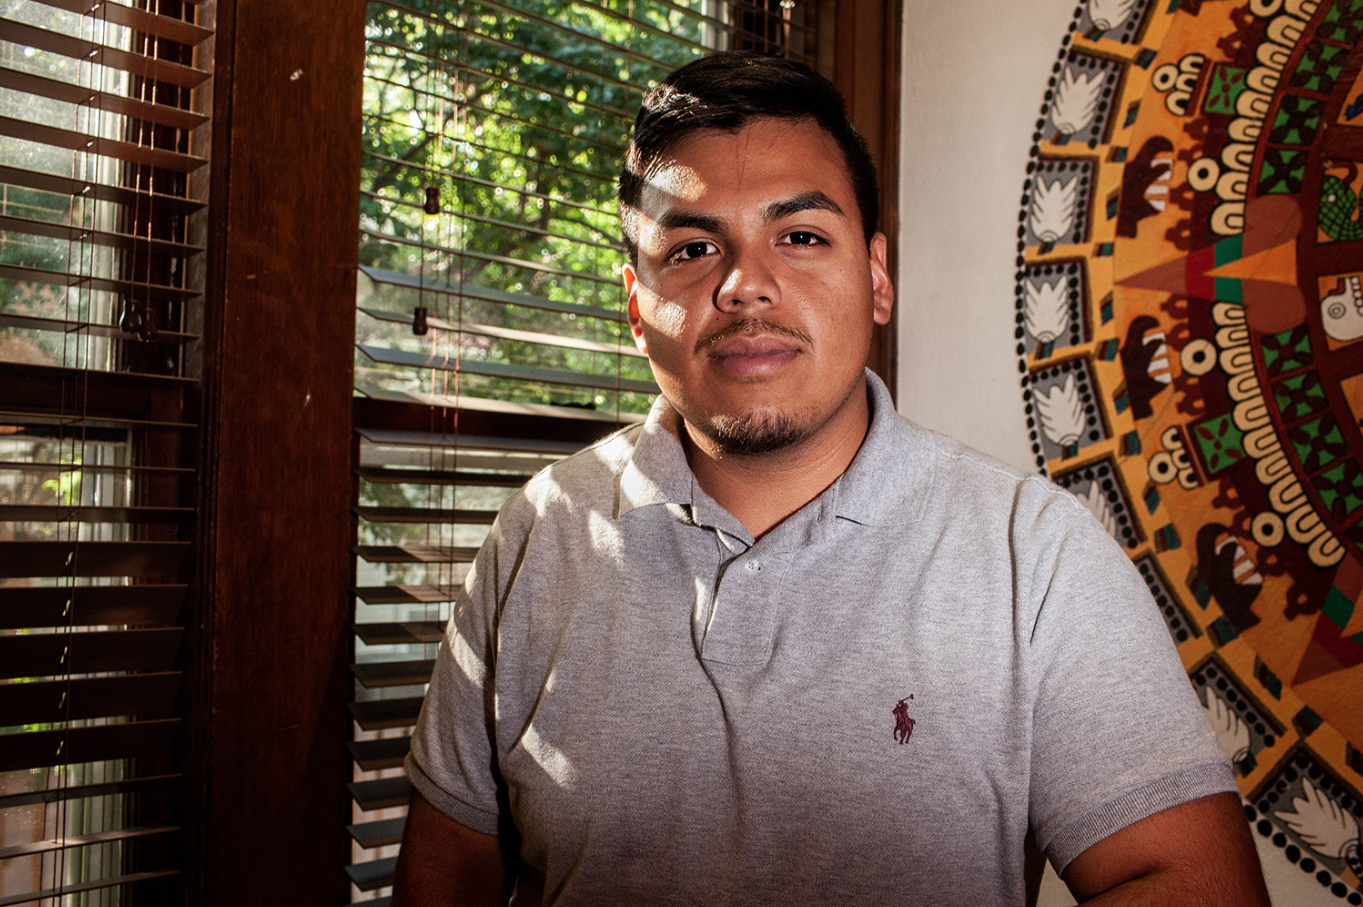 UISG Latinx Constituency Senator Fredy  Quevedo poses for a portrait in the Latino-Native American Cultural Center on Monday, August 27, 2018. In his role as Constituency Senator, Quevedo serves as a bridge between UISG and the latino community.